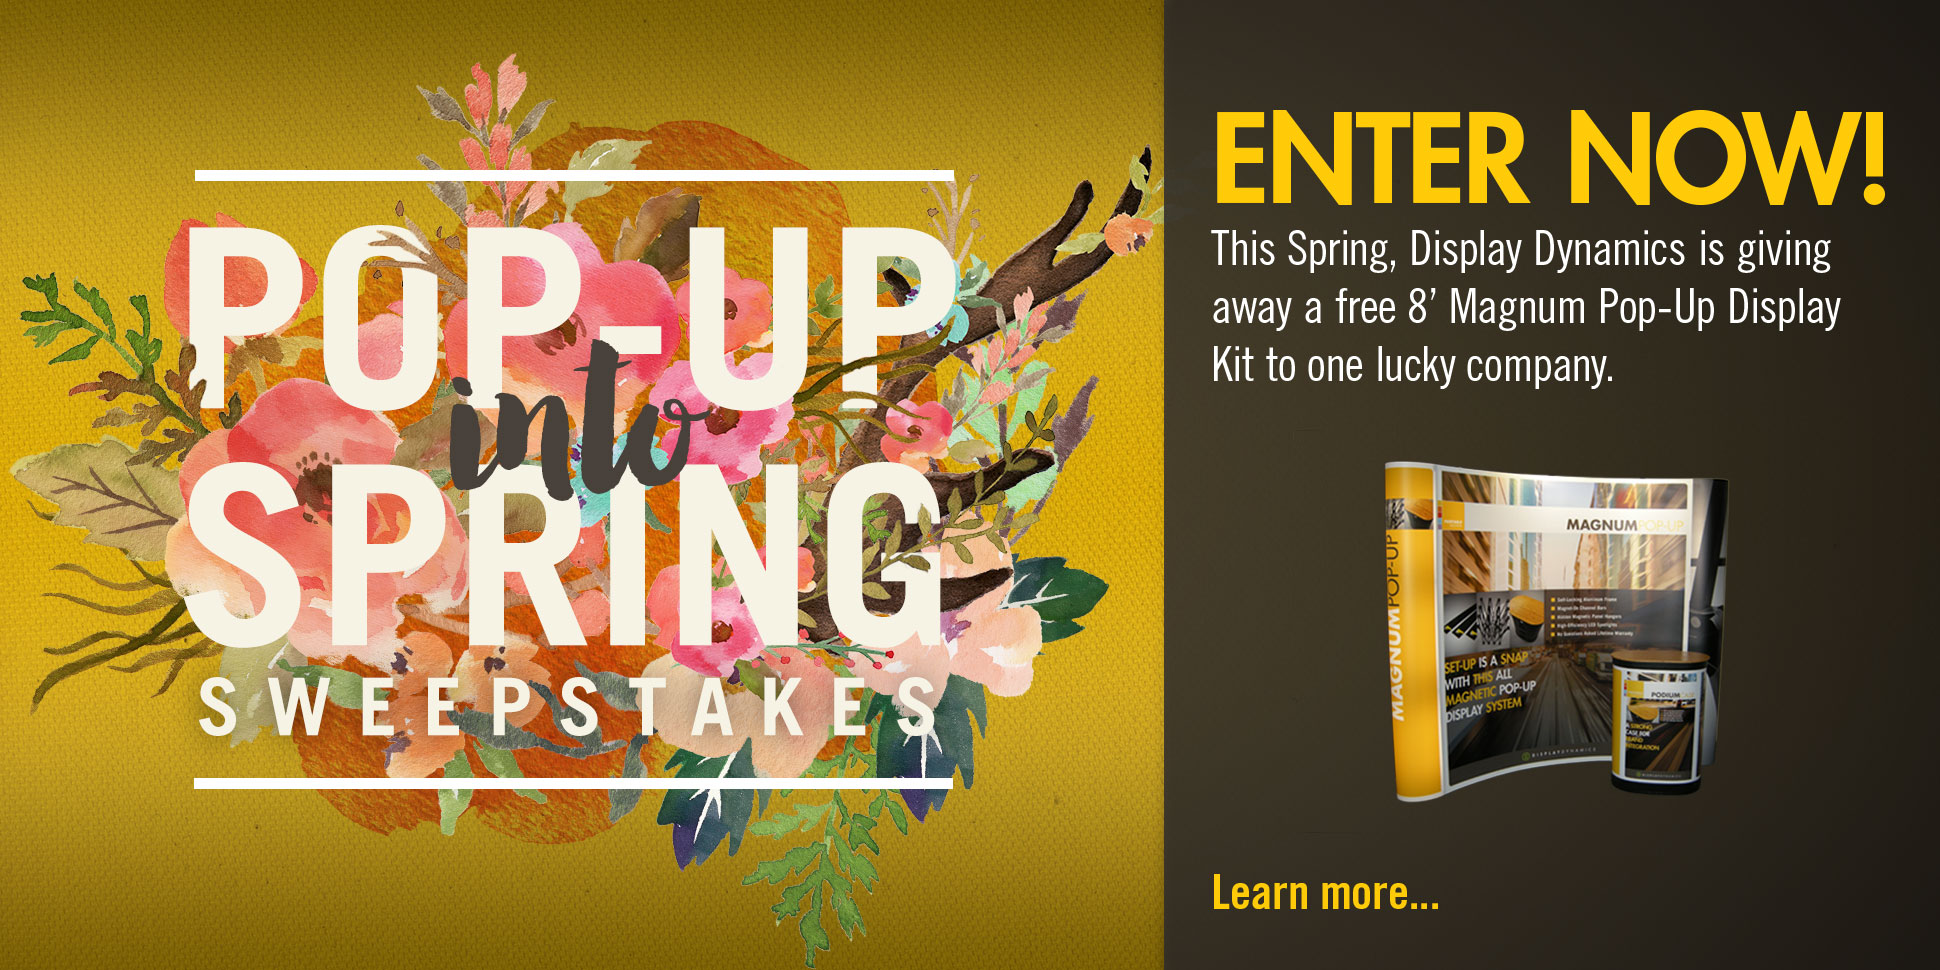 Pop-Up Into Spring Sweepstakes